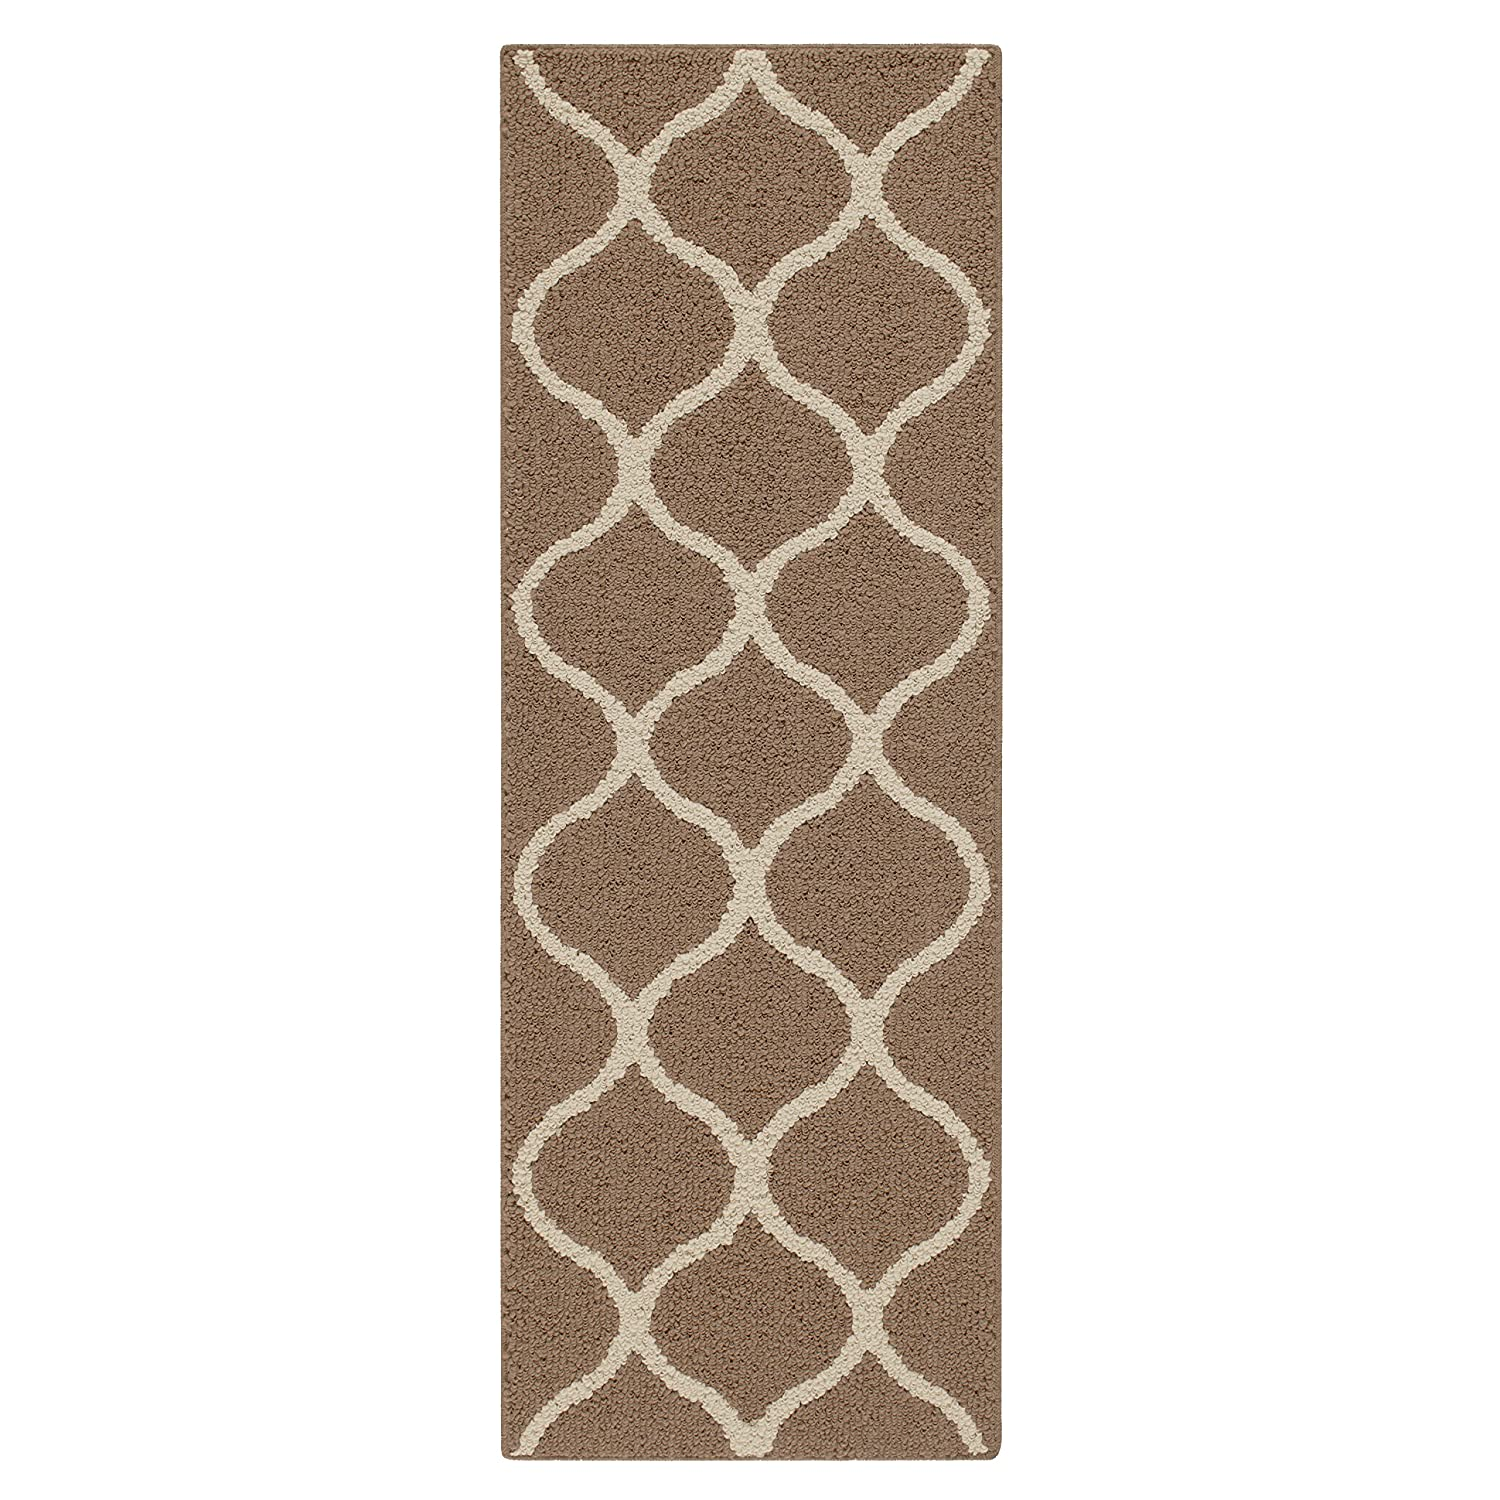 Maples Rugs Runner Rug - Rebecca 1'9 x 5' Non Skid Hallway Carpet Entry Rugs Runners [Made in USA] for Kitchen and Entryway, Café Brown/White